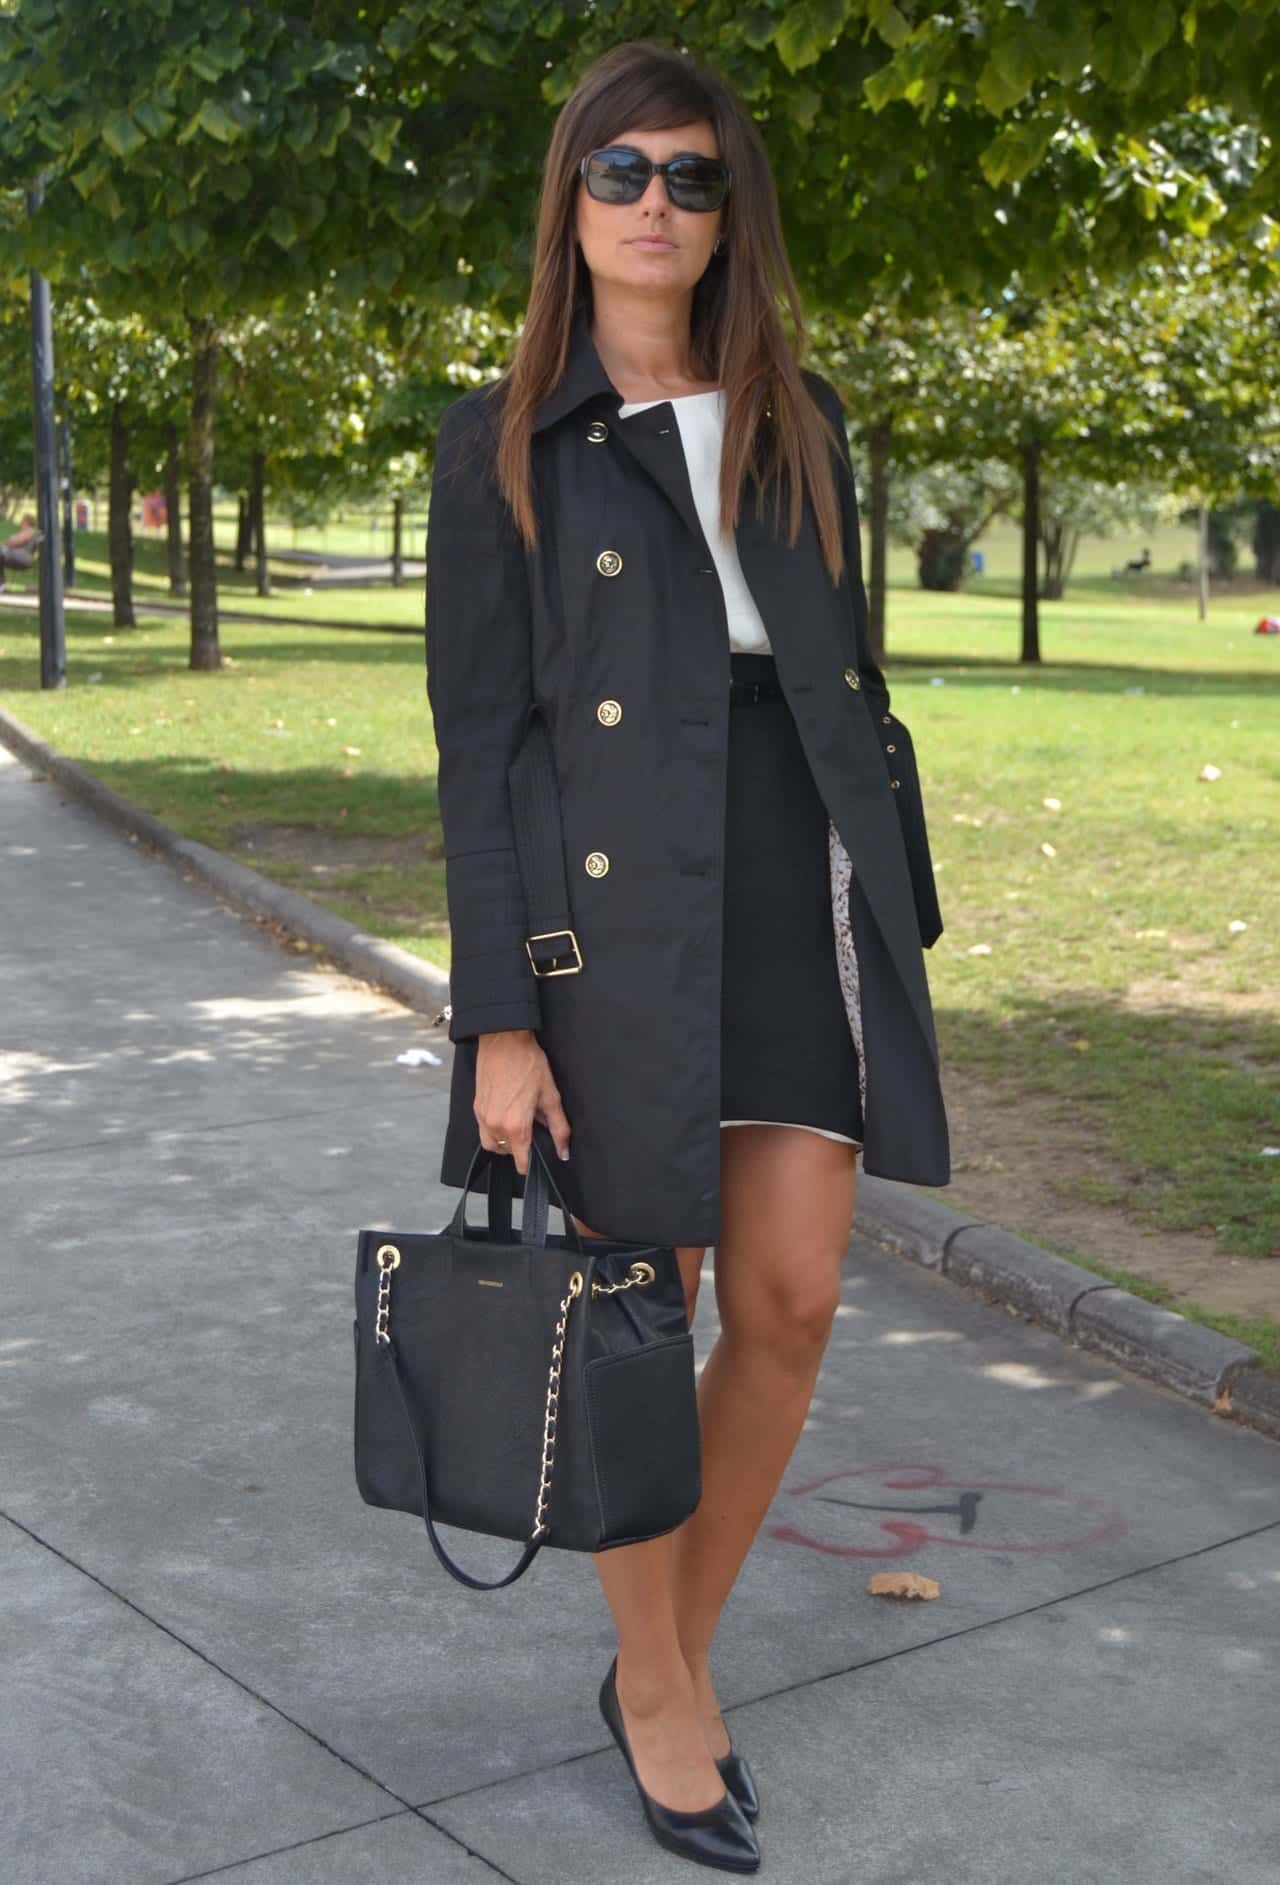 how-to-wear-long-coat-at-office Fashionable Business Attire-15 Casual Work Outfits for Women